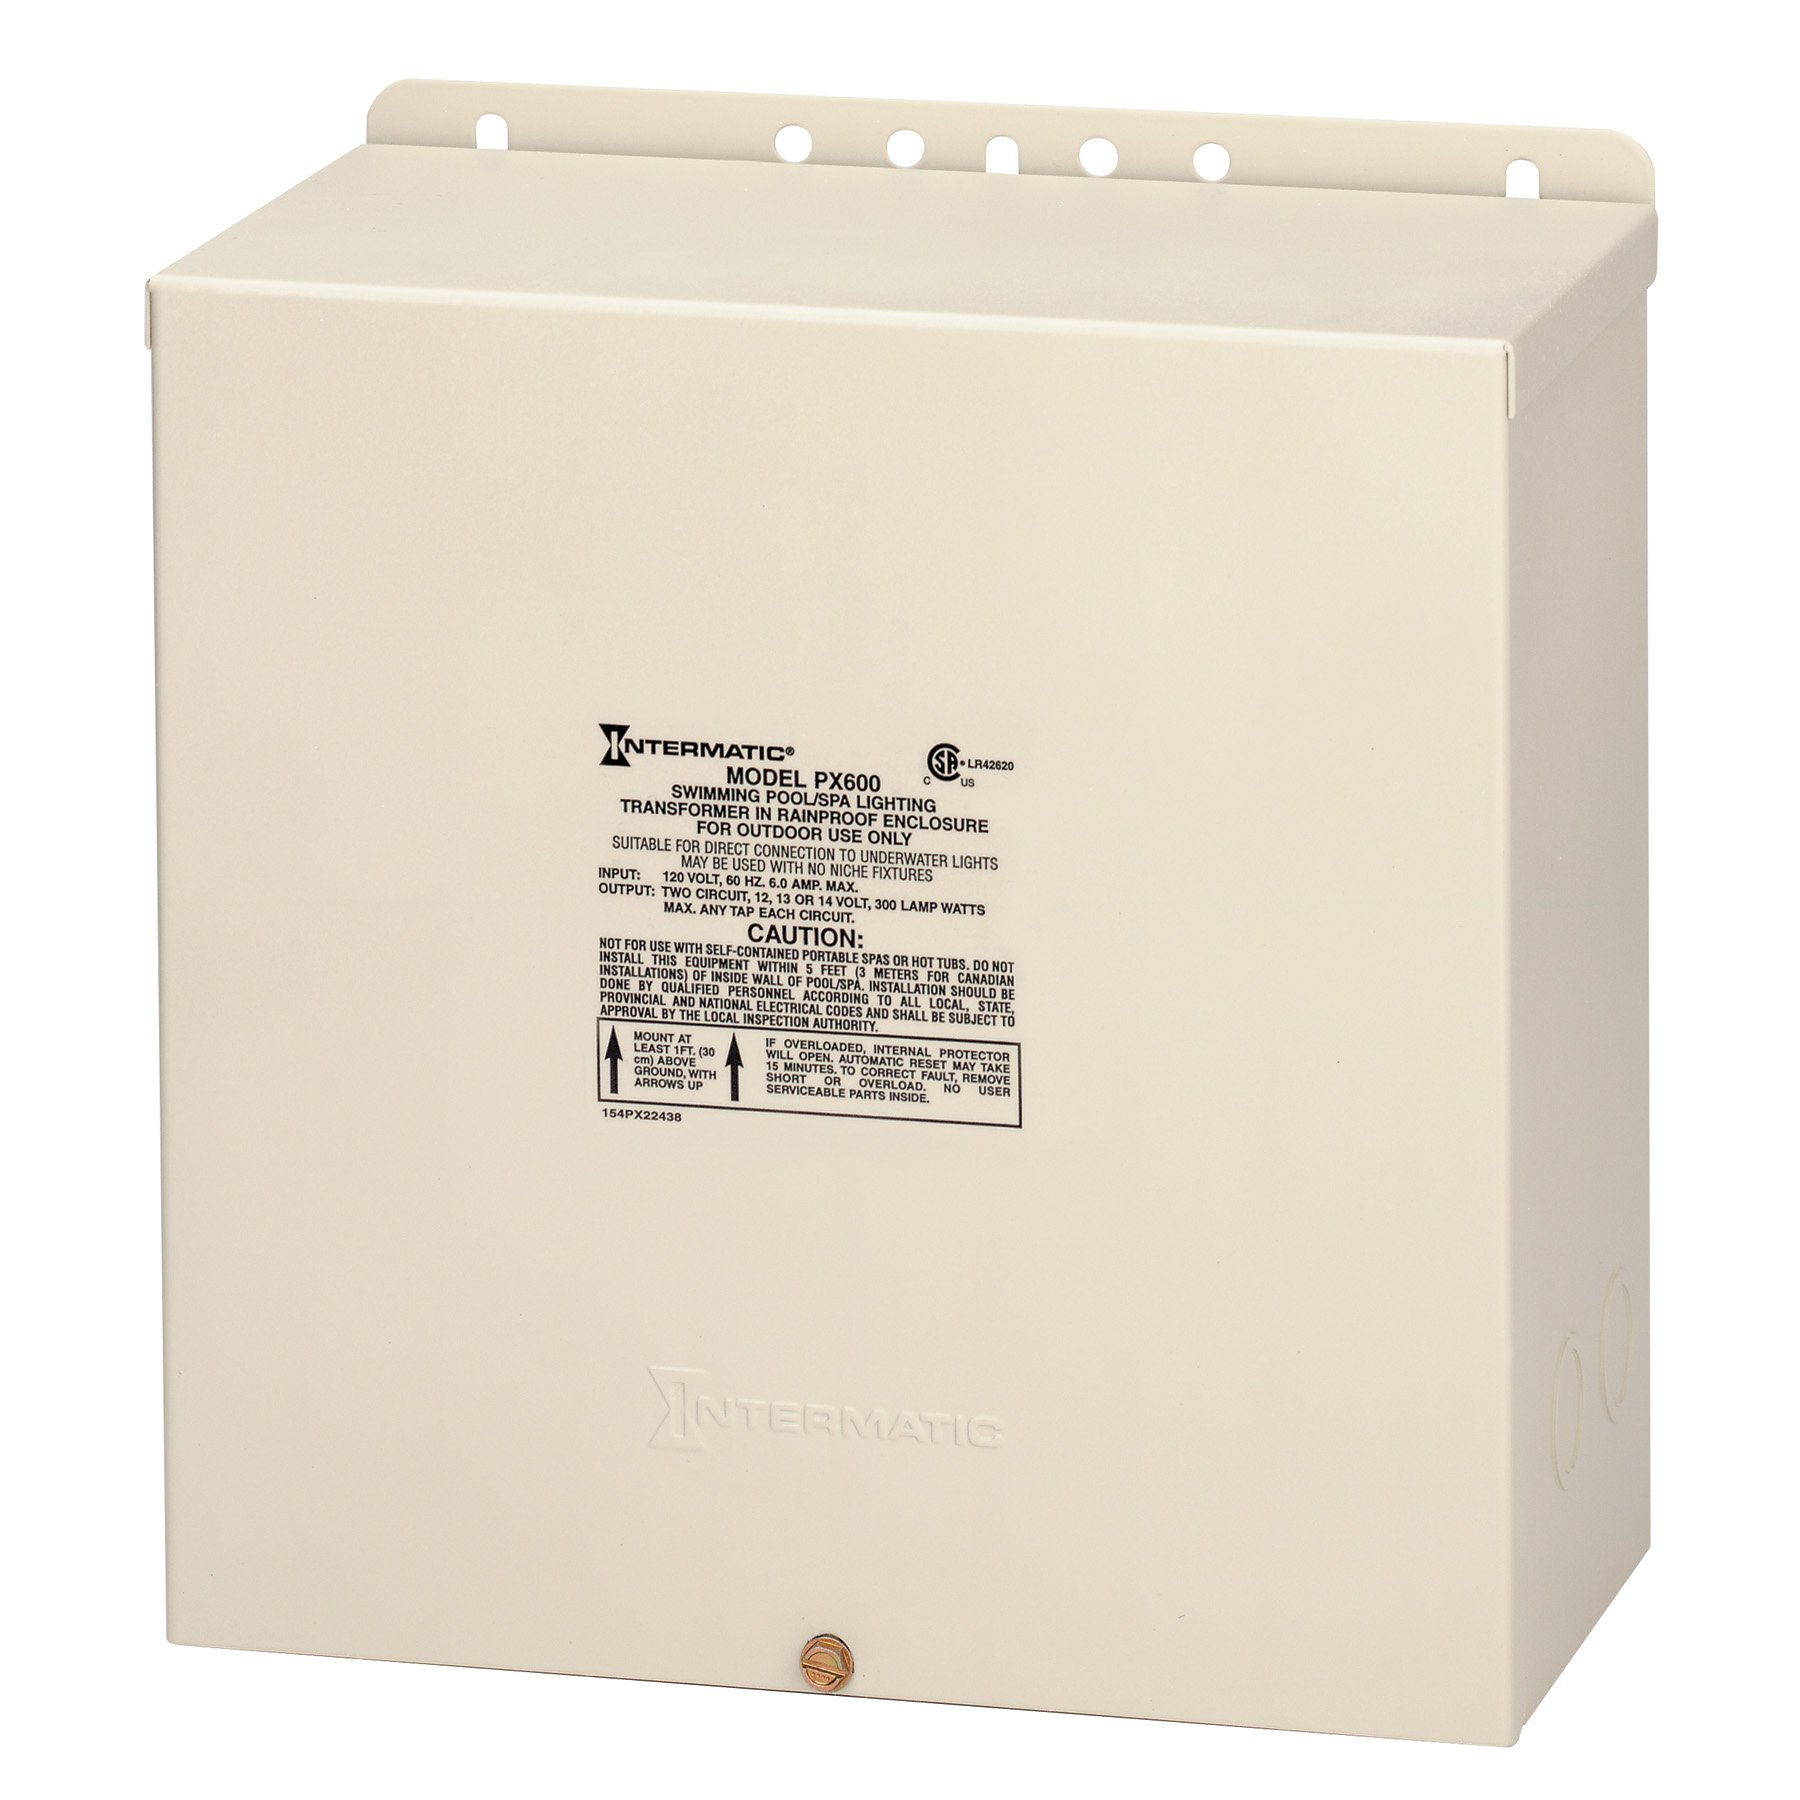 Intermatic PX600 Pool Light 600-Watt Safety Transformer, Beige